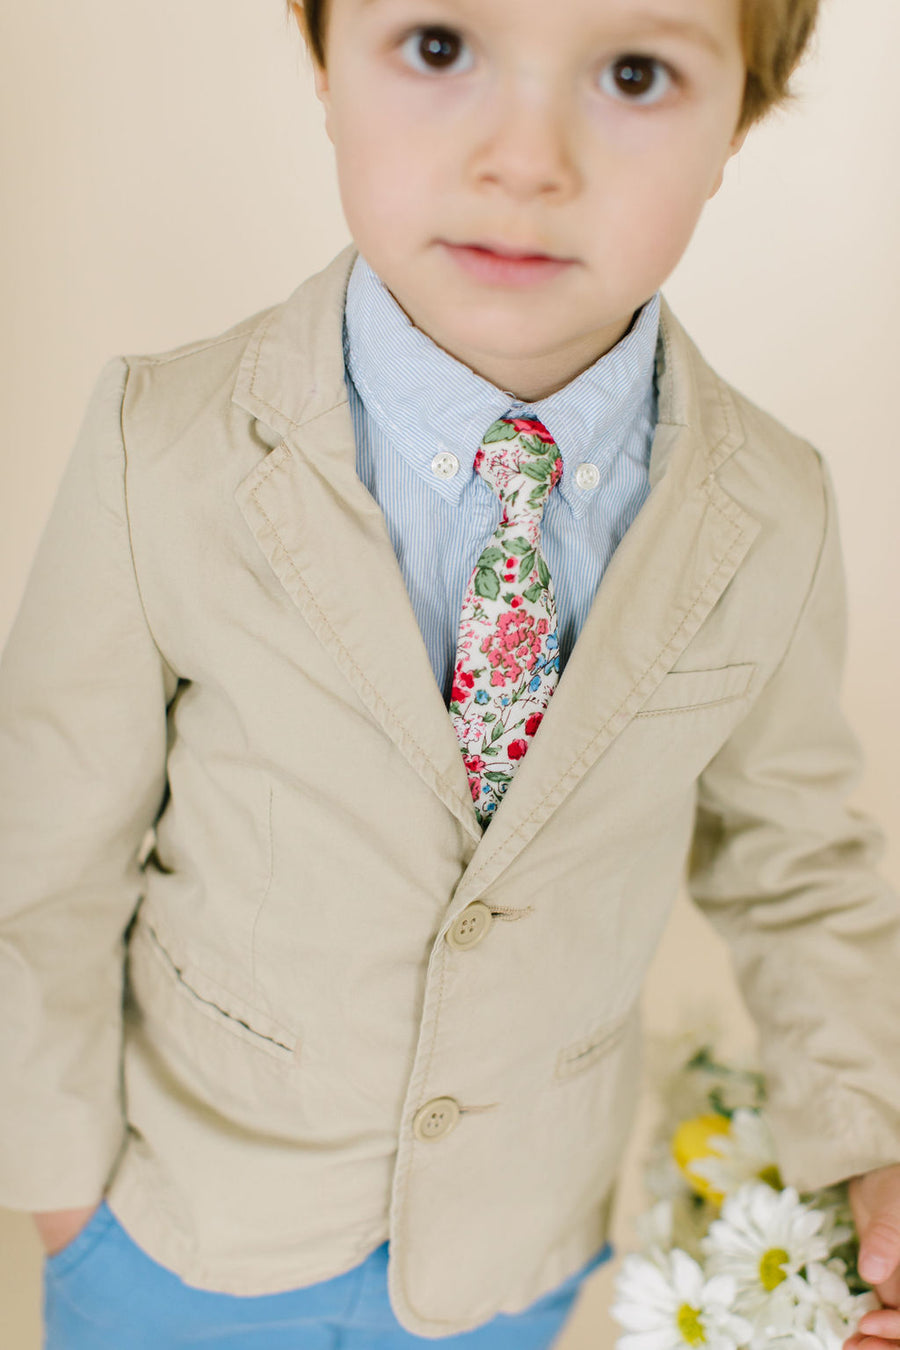 Last Chance Clearance - Spring Floral Boys Tie